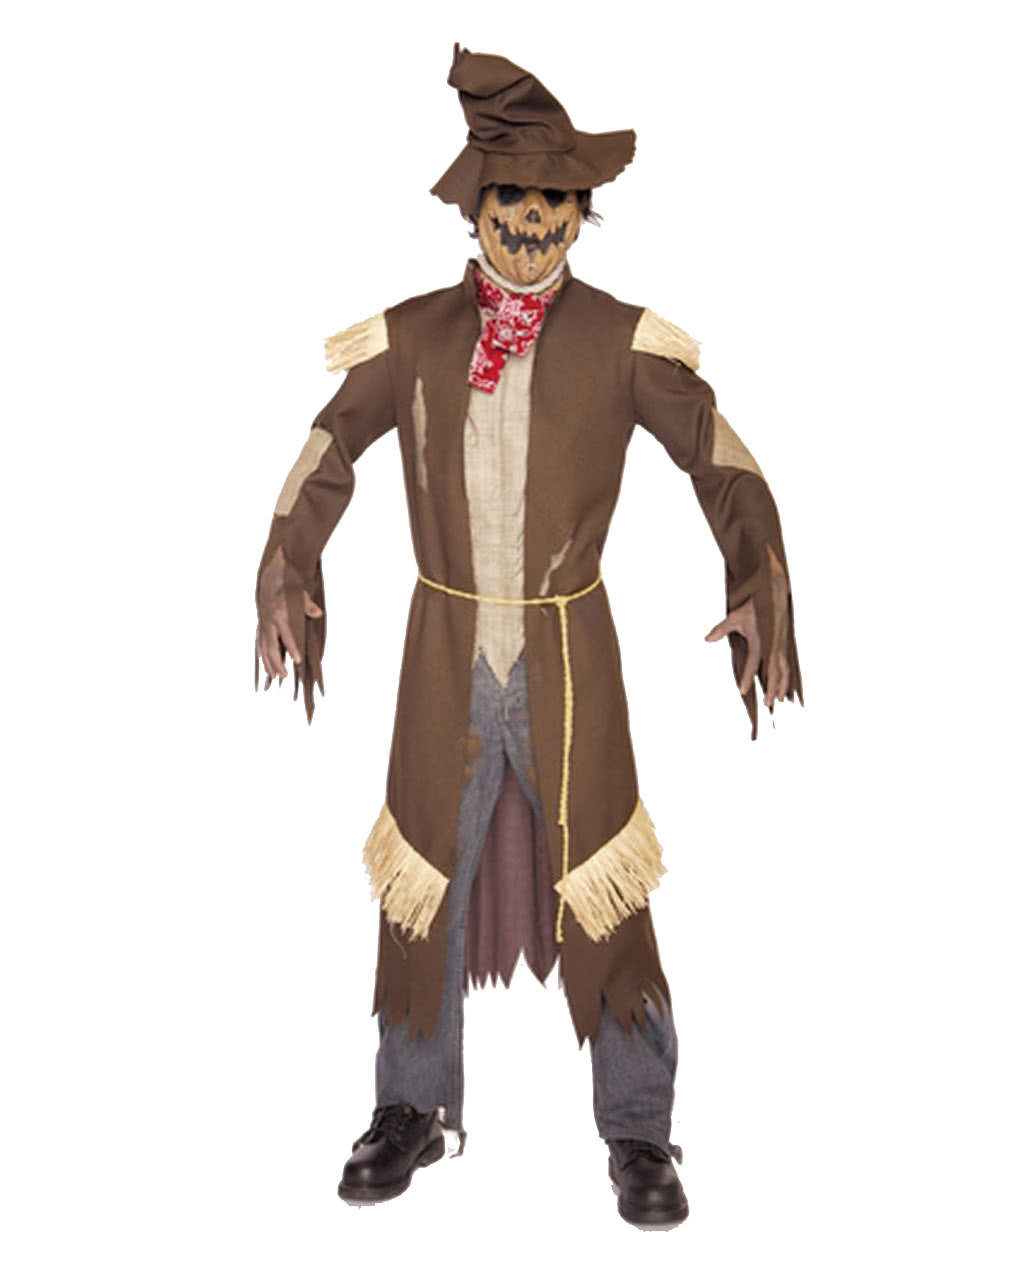 death crow costume scarecrow costume with mask, hat and coat